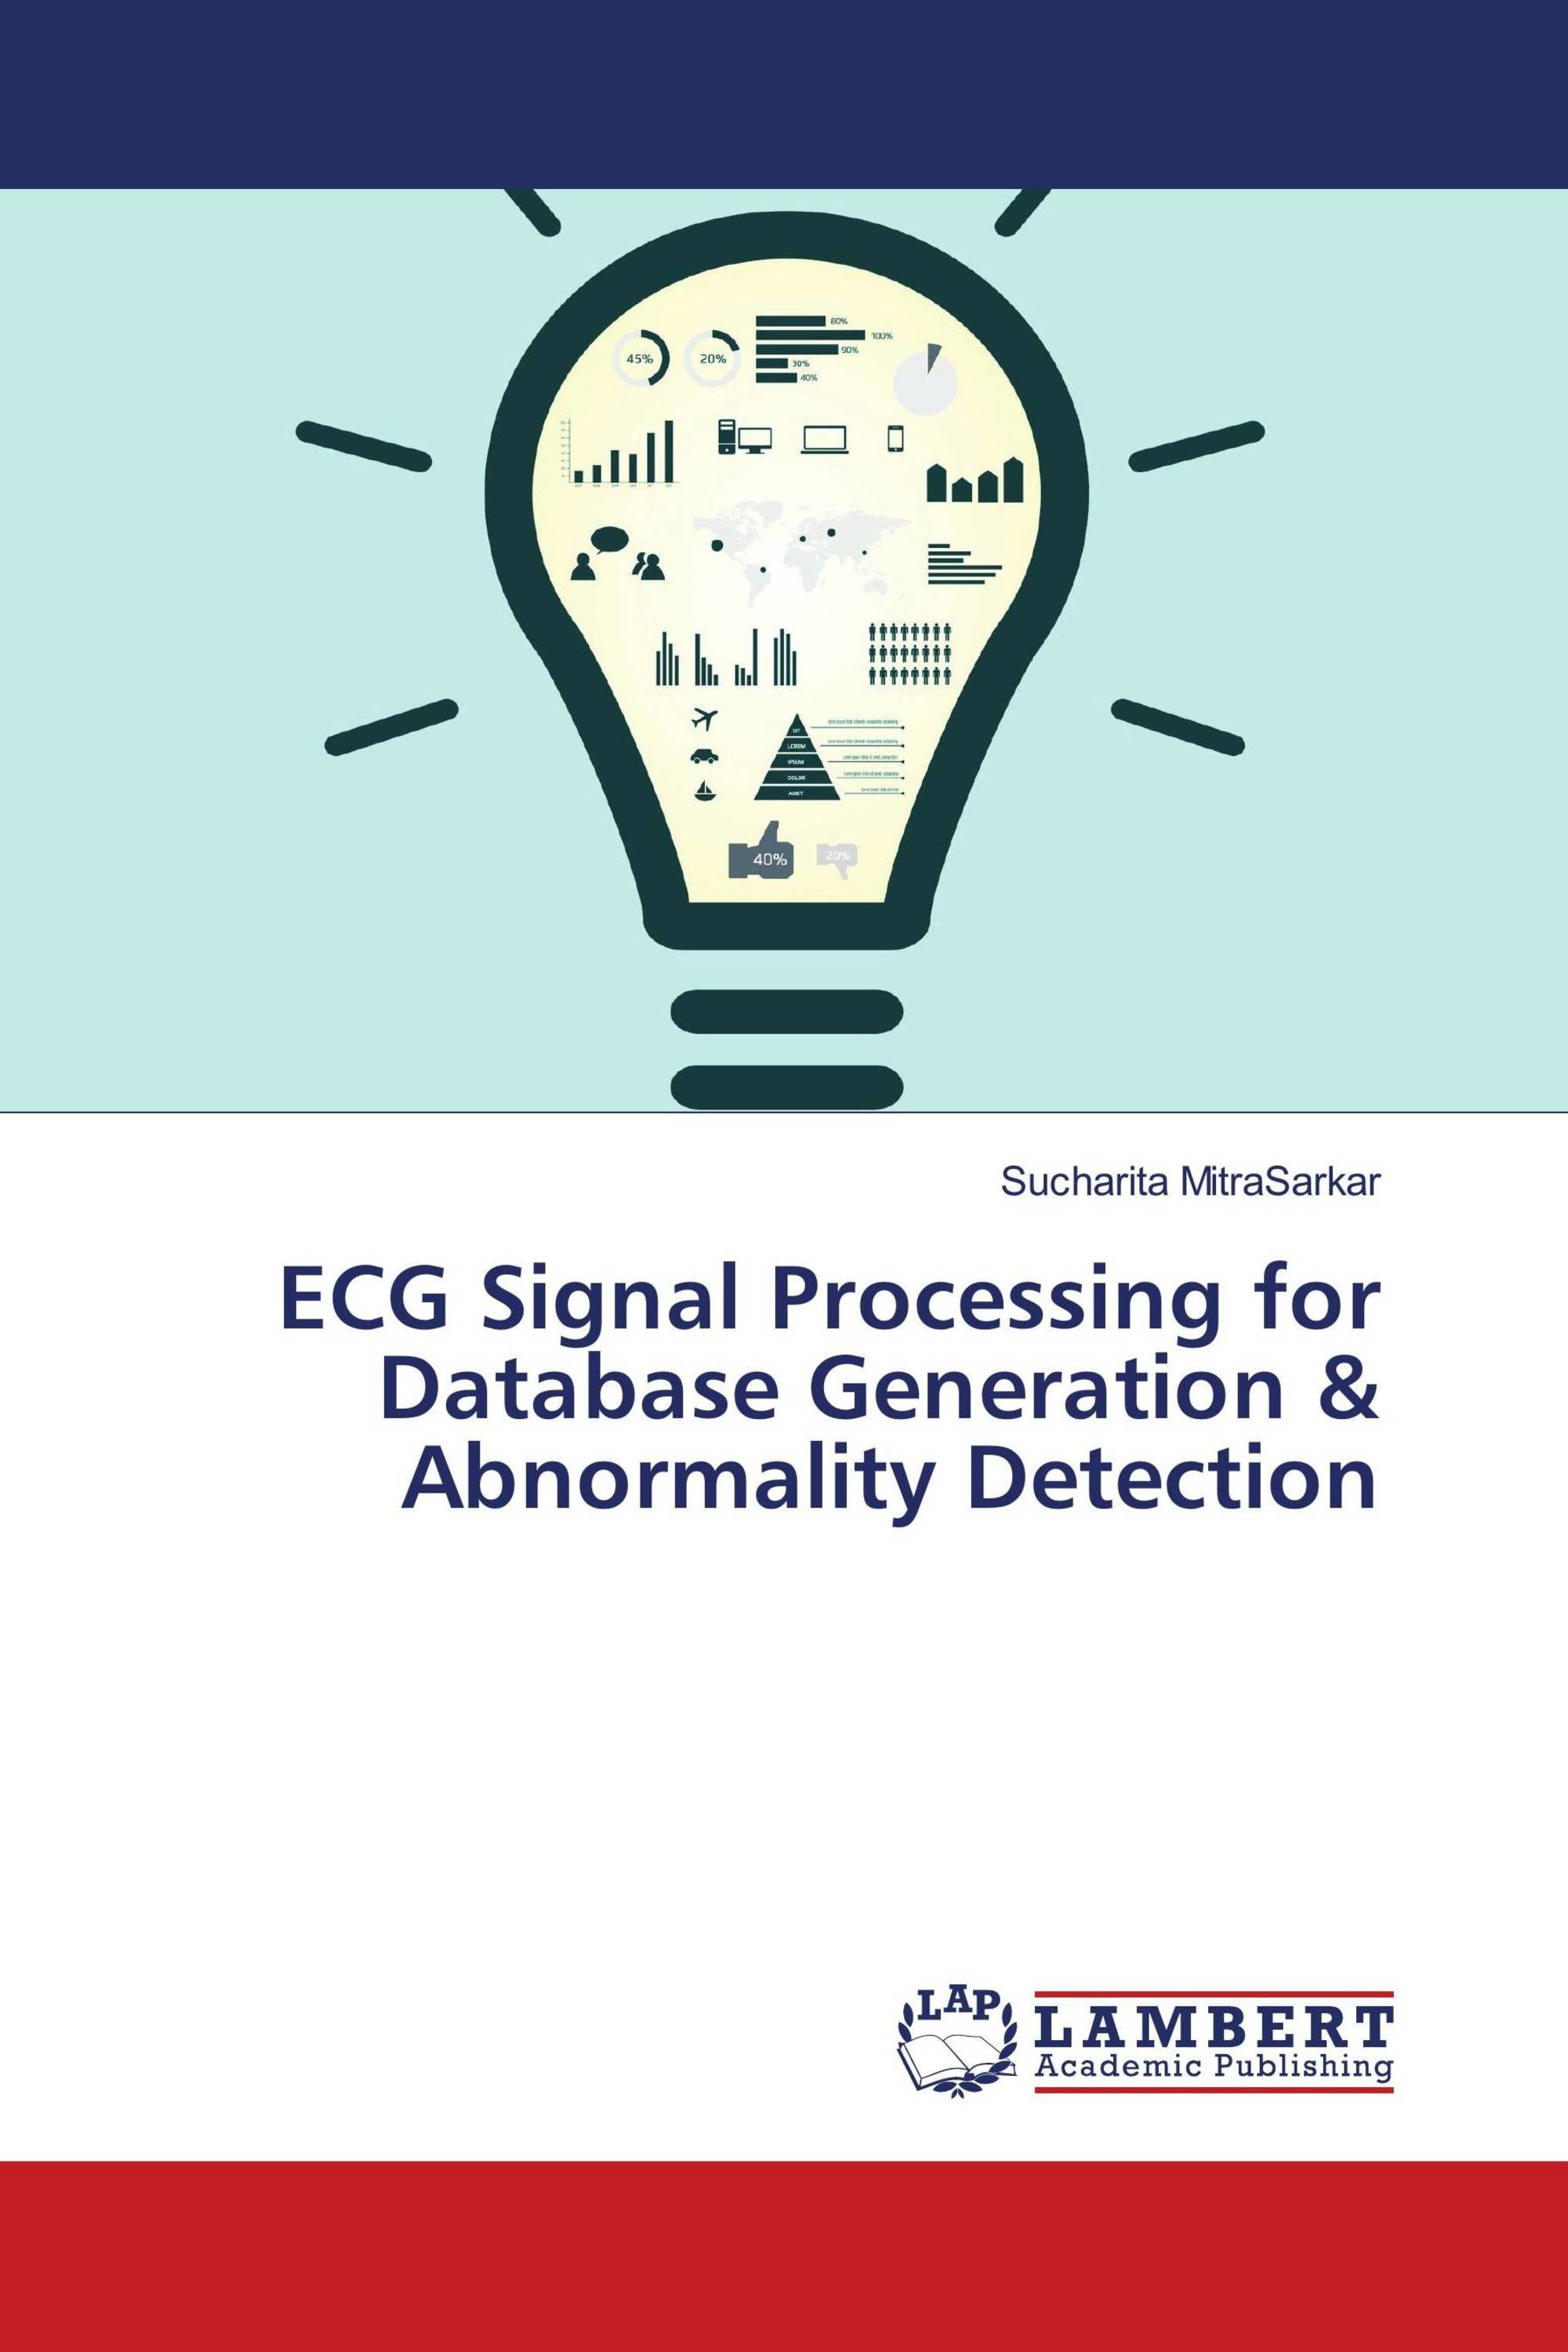 ECG Signal Processing for Database Generation & Abnormality